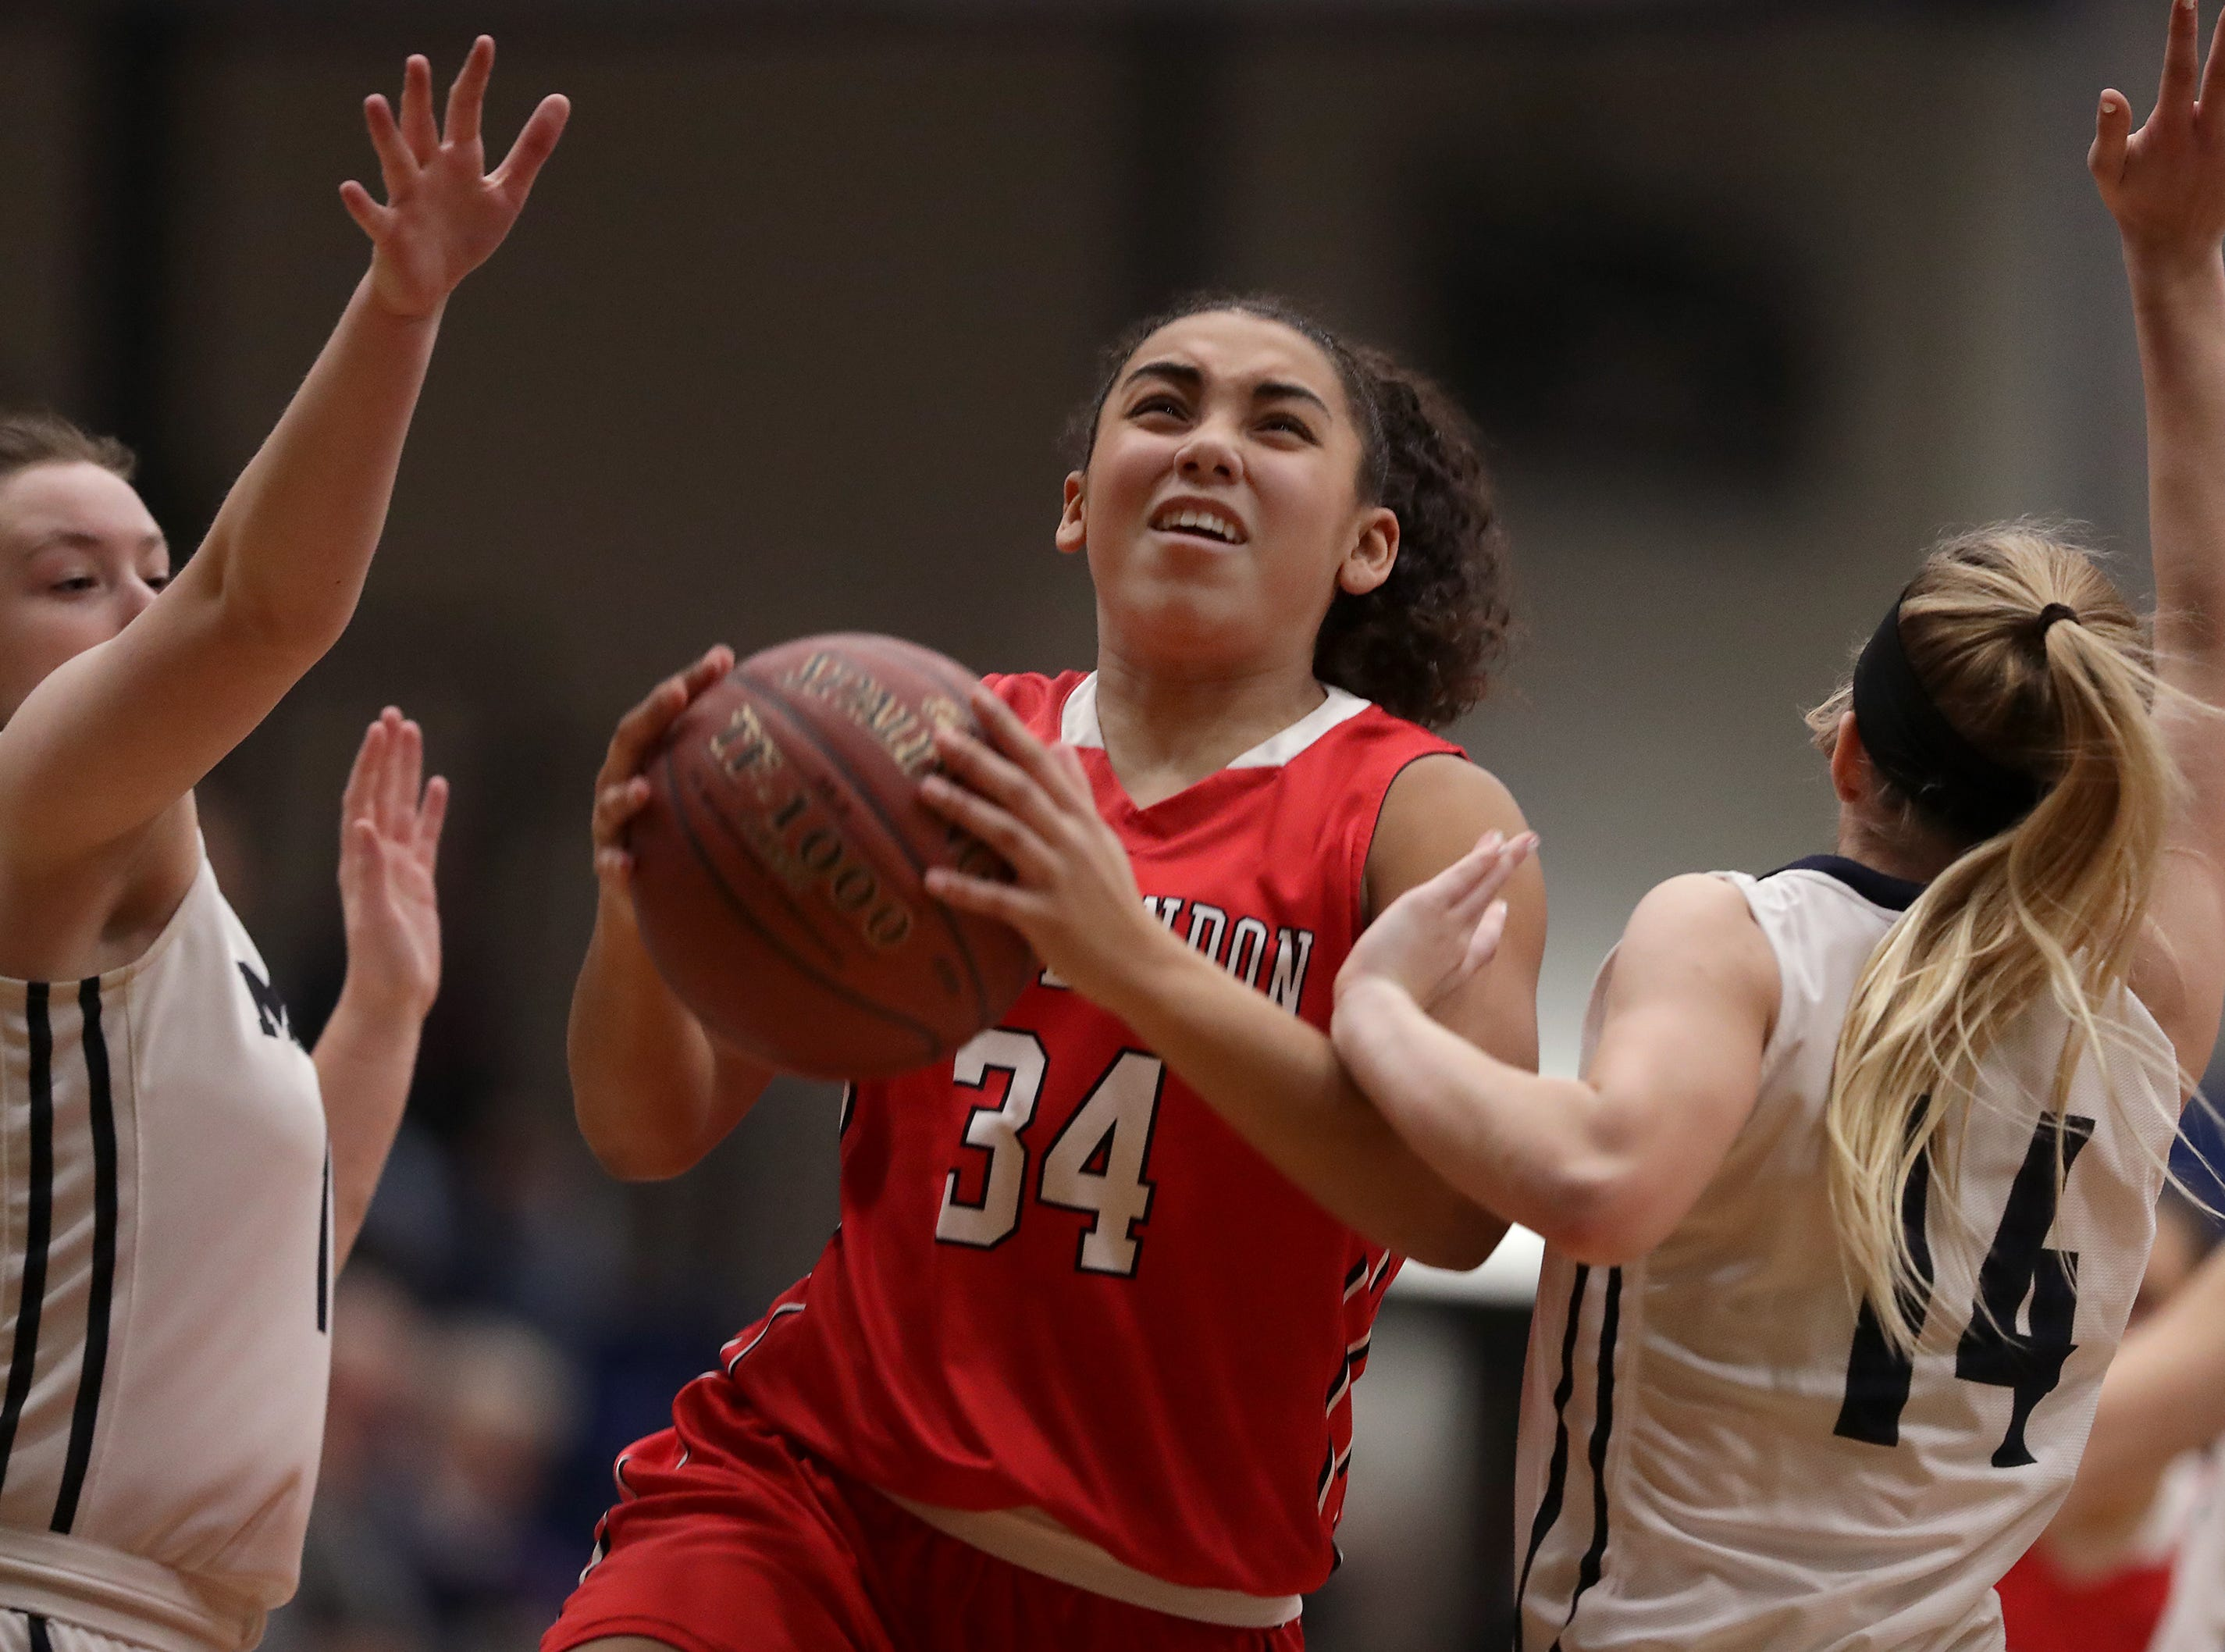 New London High School's #34 Mikayla Henderson against Menasha High School during their girls basketball game on Friday, December 14, 2018, in Menasha, Wis.